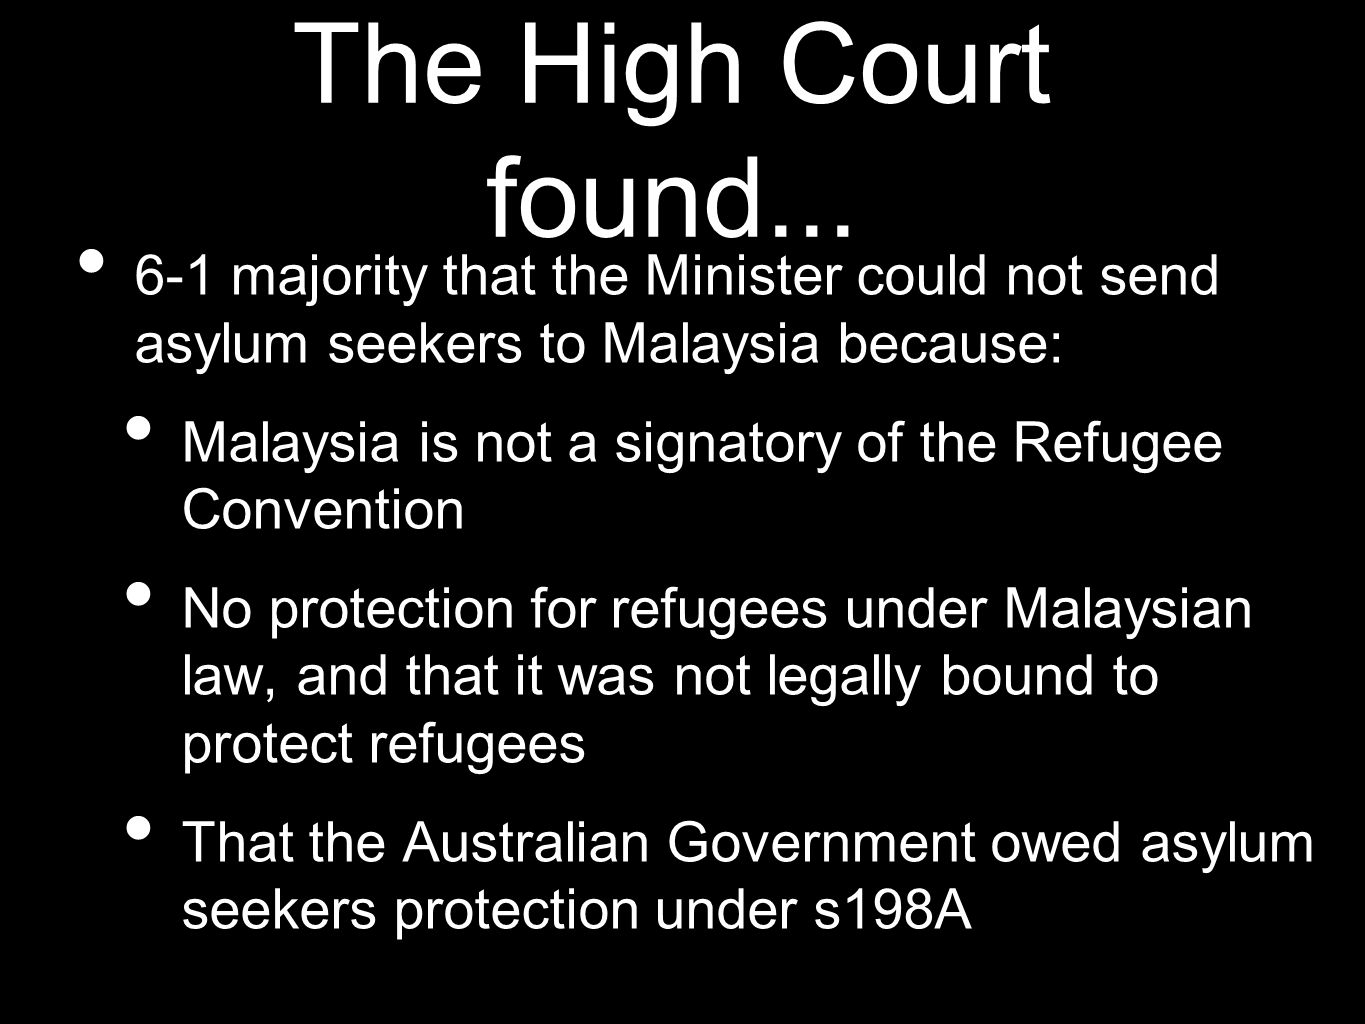 The High Court found... 6-1 majority that the Minister could not send asylum seekers to Malaysia because: